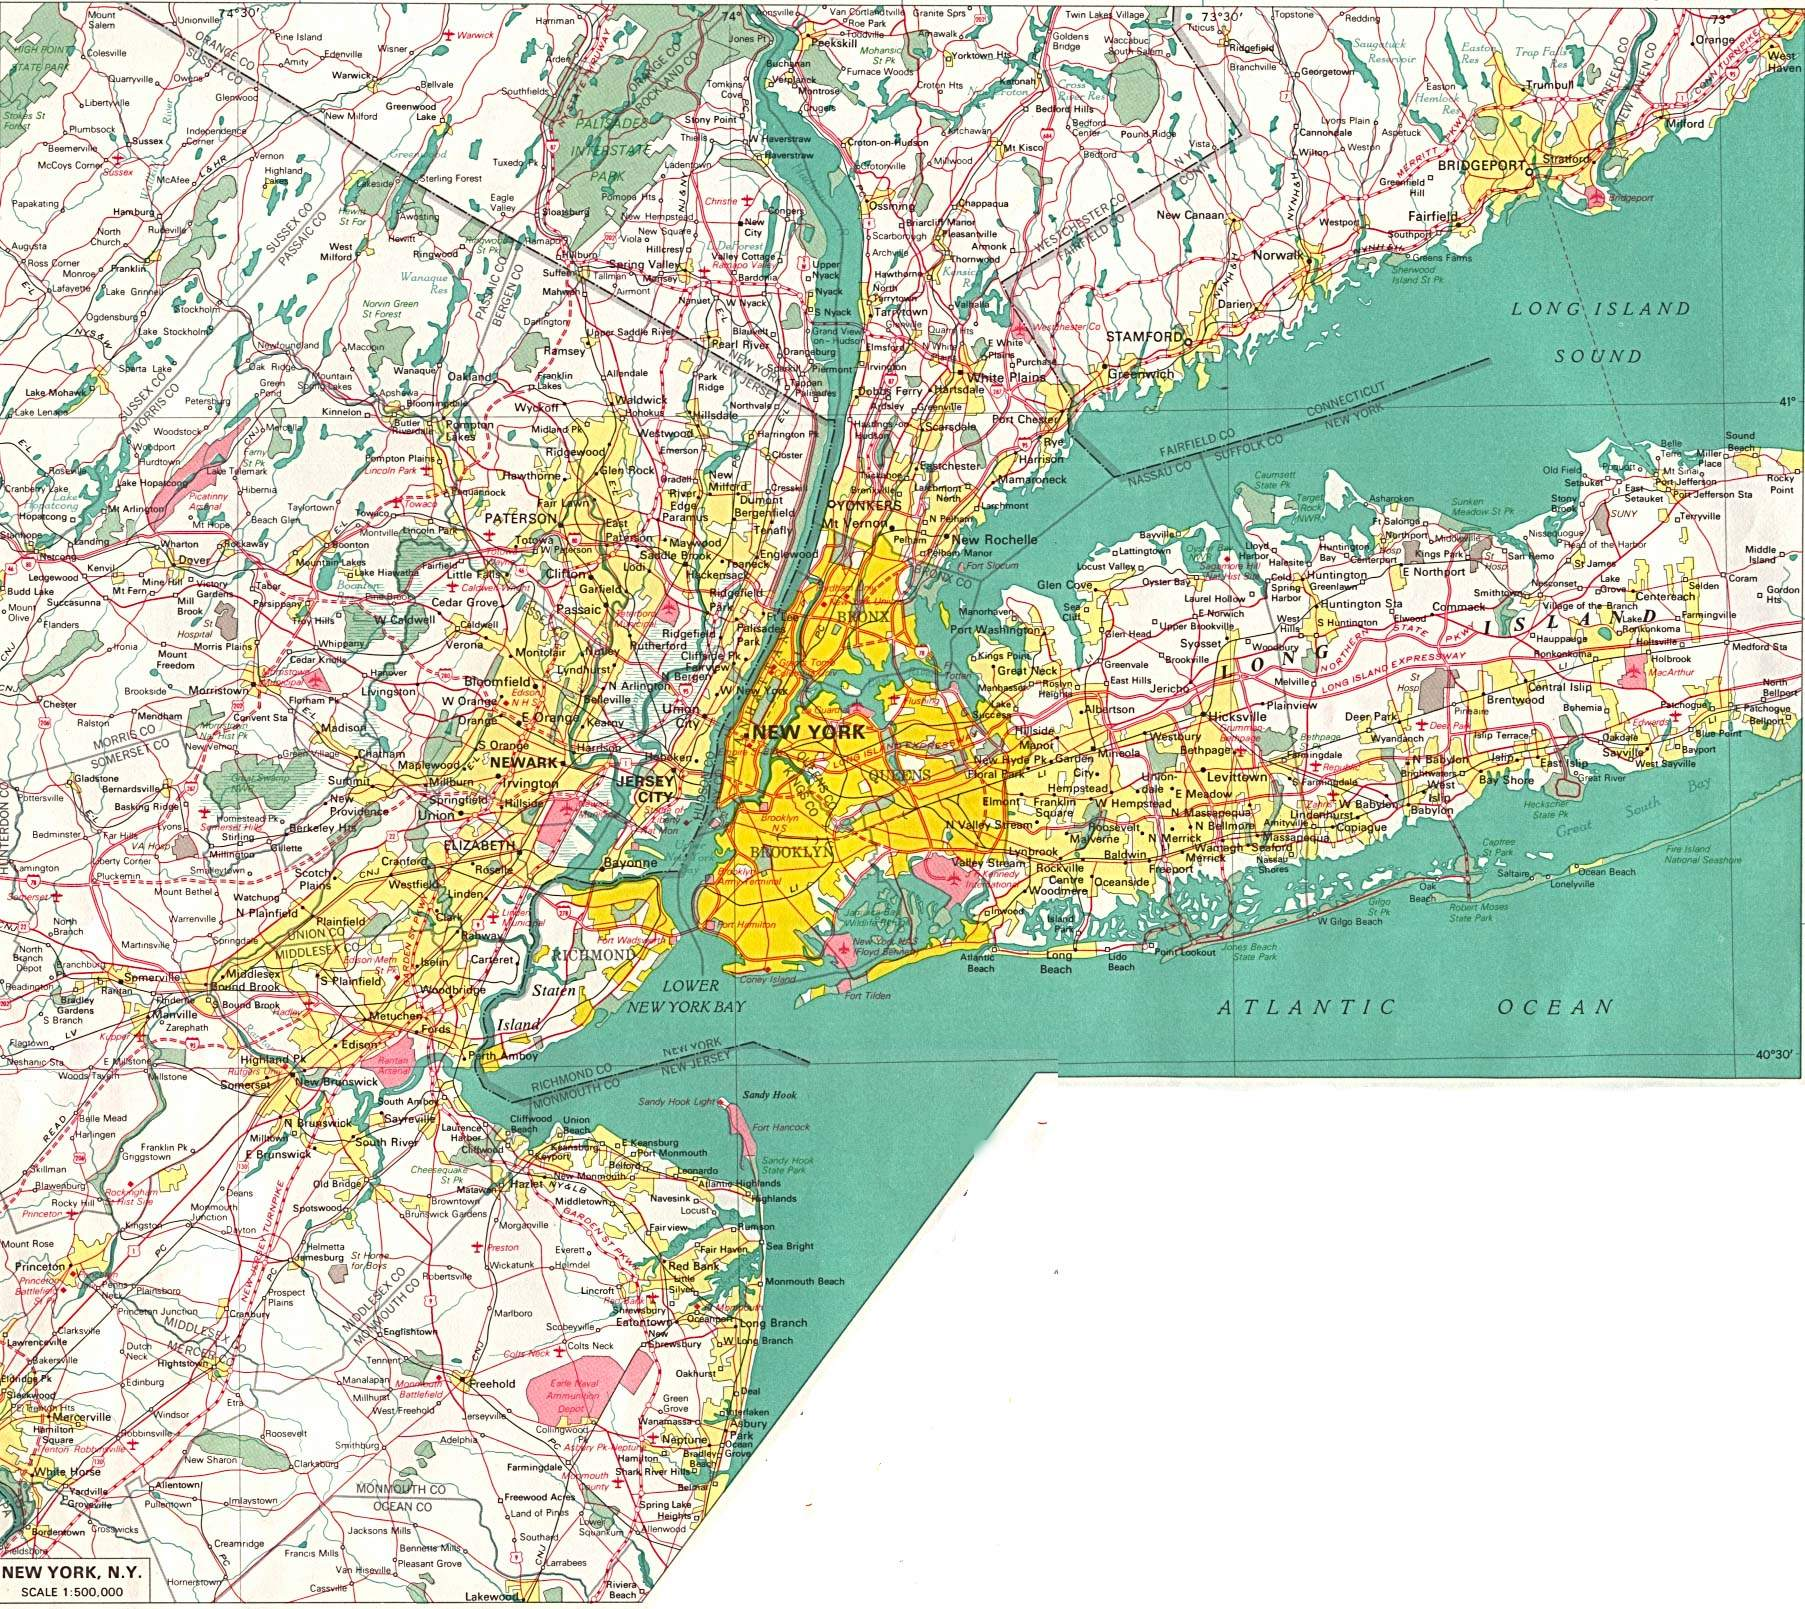 Picture Of New York Map.Large New York Maps For Free Download And Print High Resolution